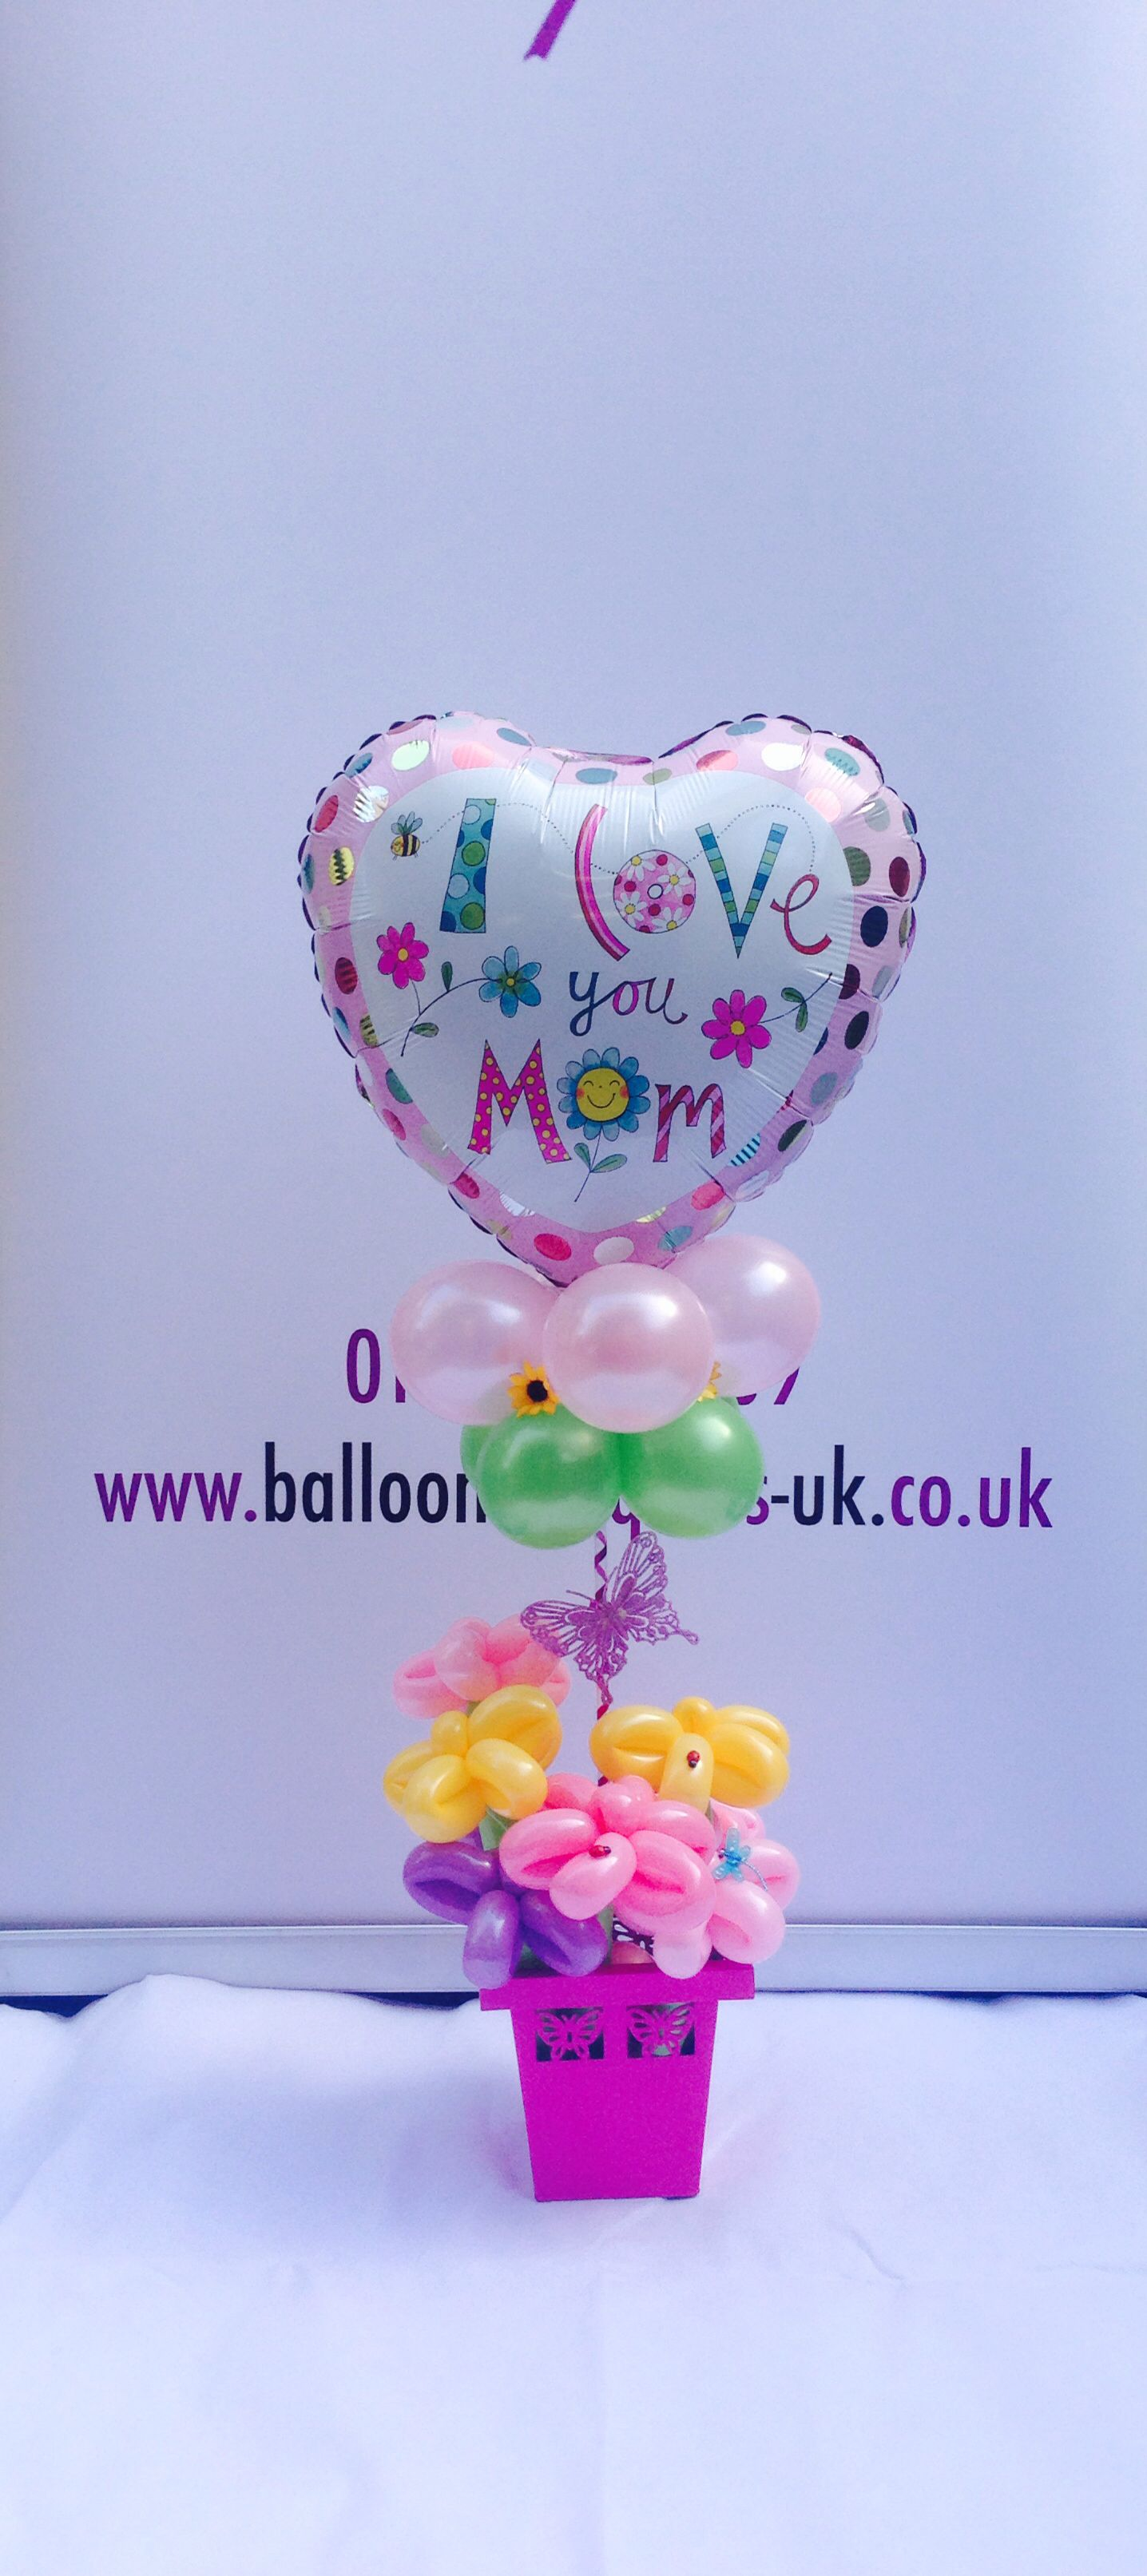 Mothers Day balloons or Birthday Balloons Designed by www.balloonbouquets-uk .co.uk